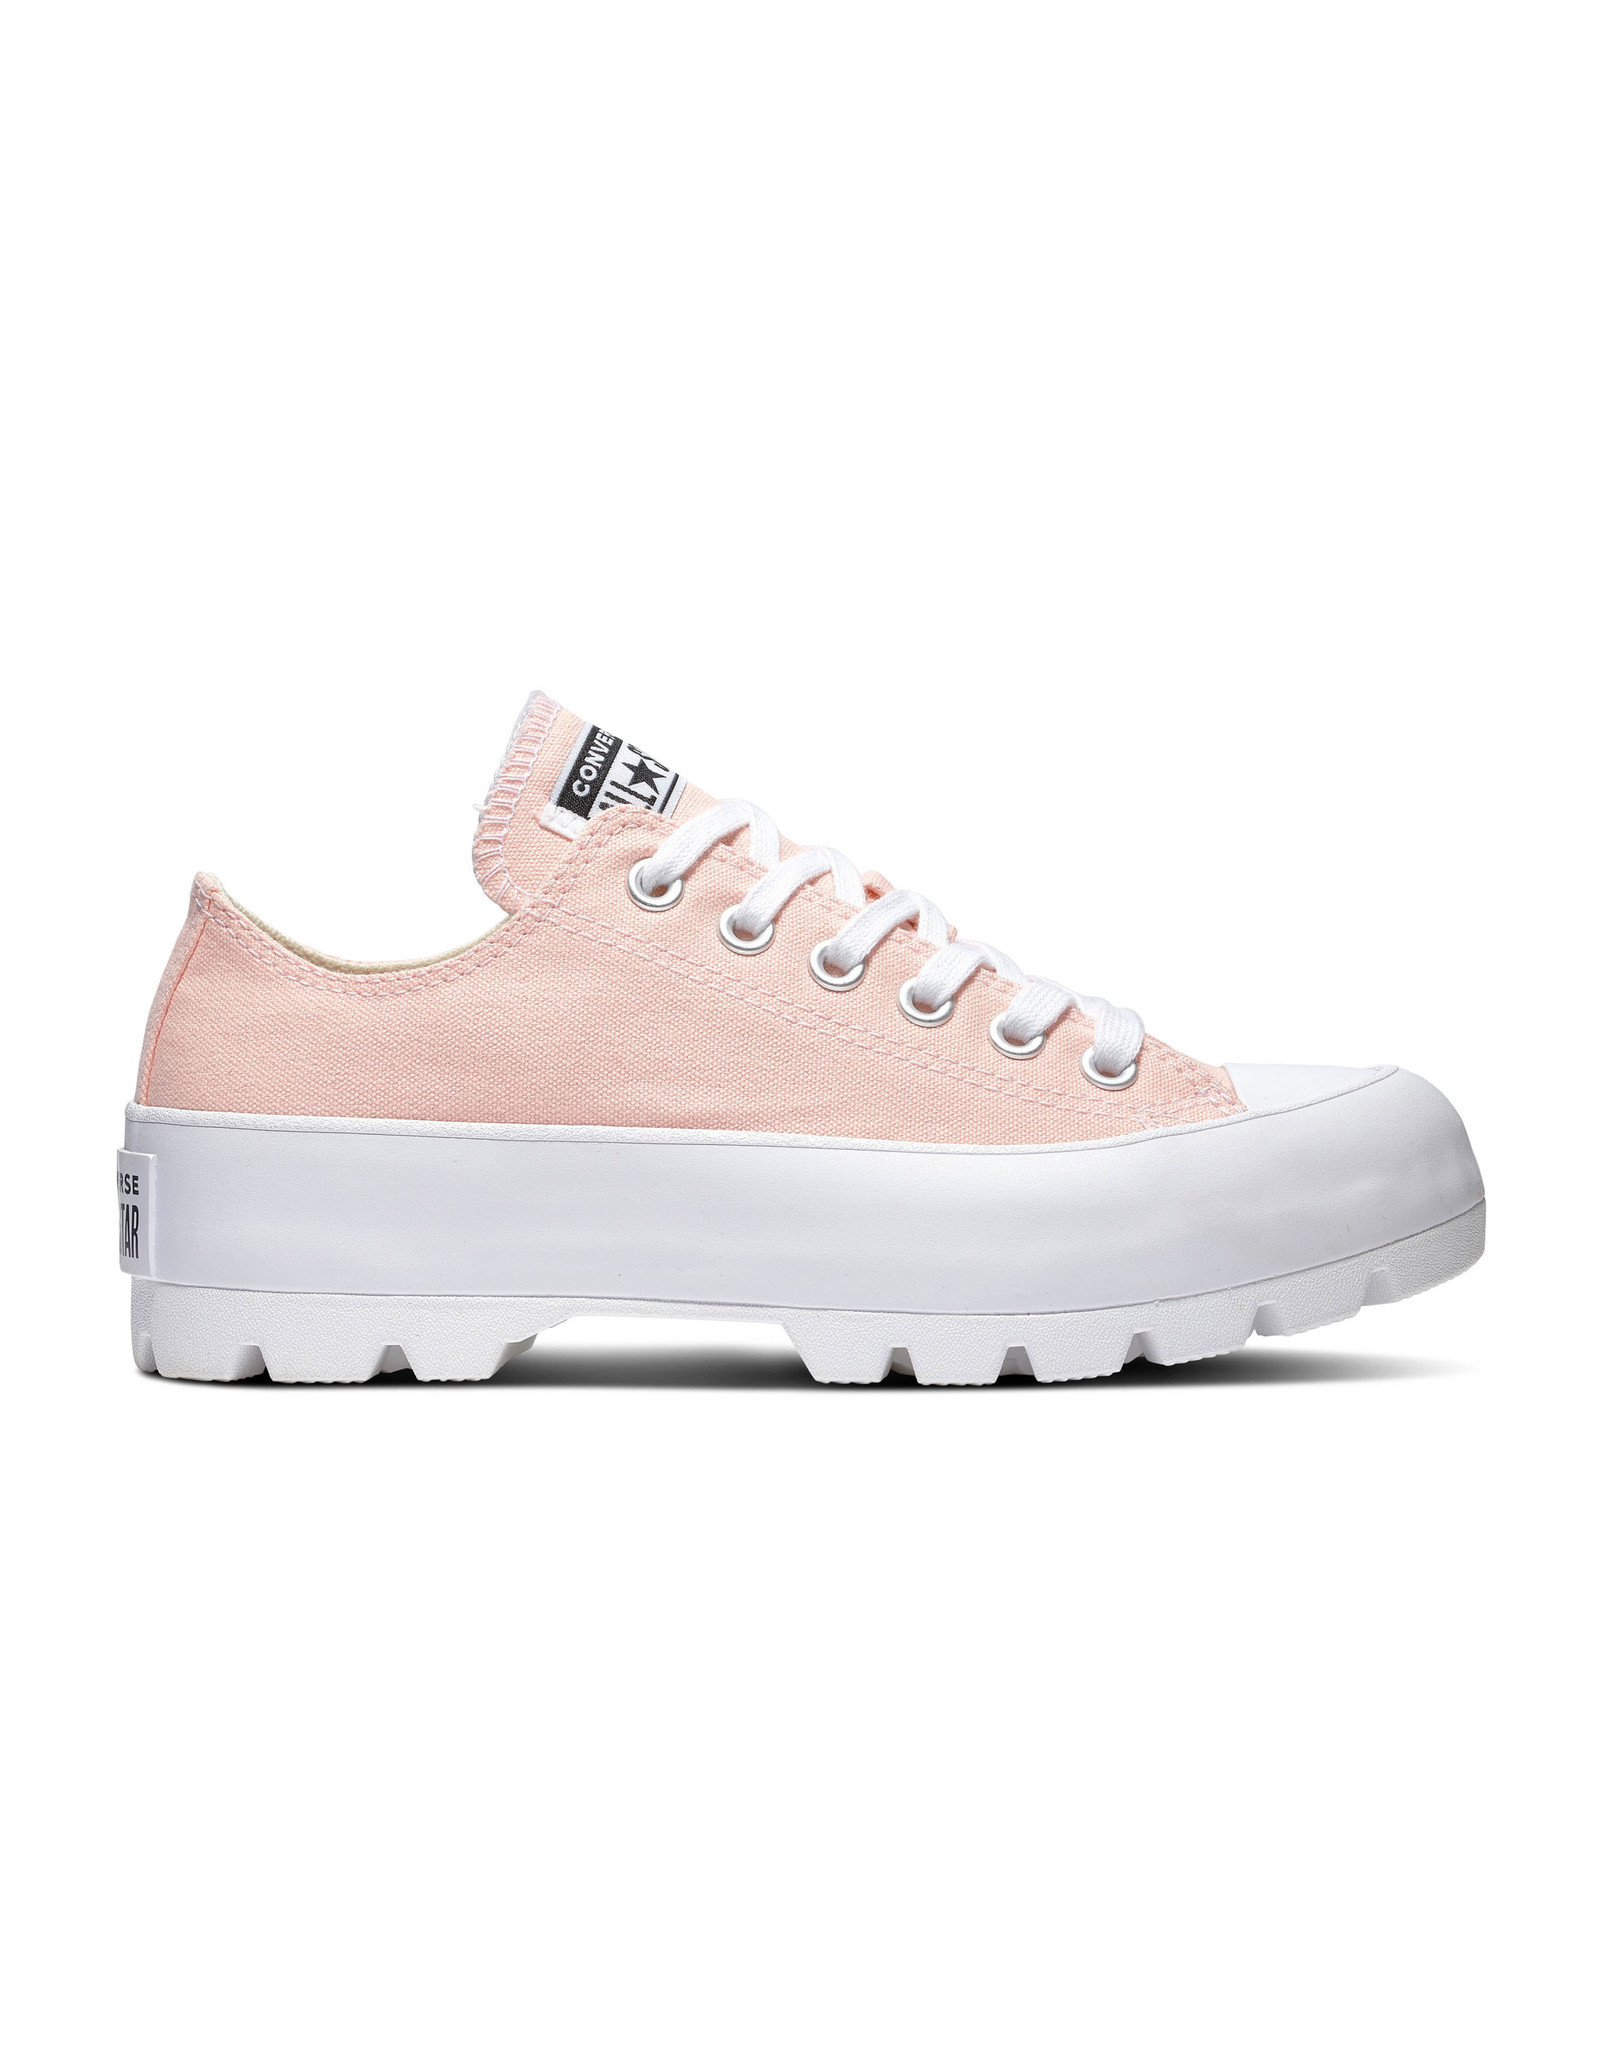 CONVERSE CHUCK TAYLOR LUGGED OX STORM PINK/WHITE/WHITE C094PX-567846C